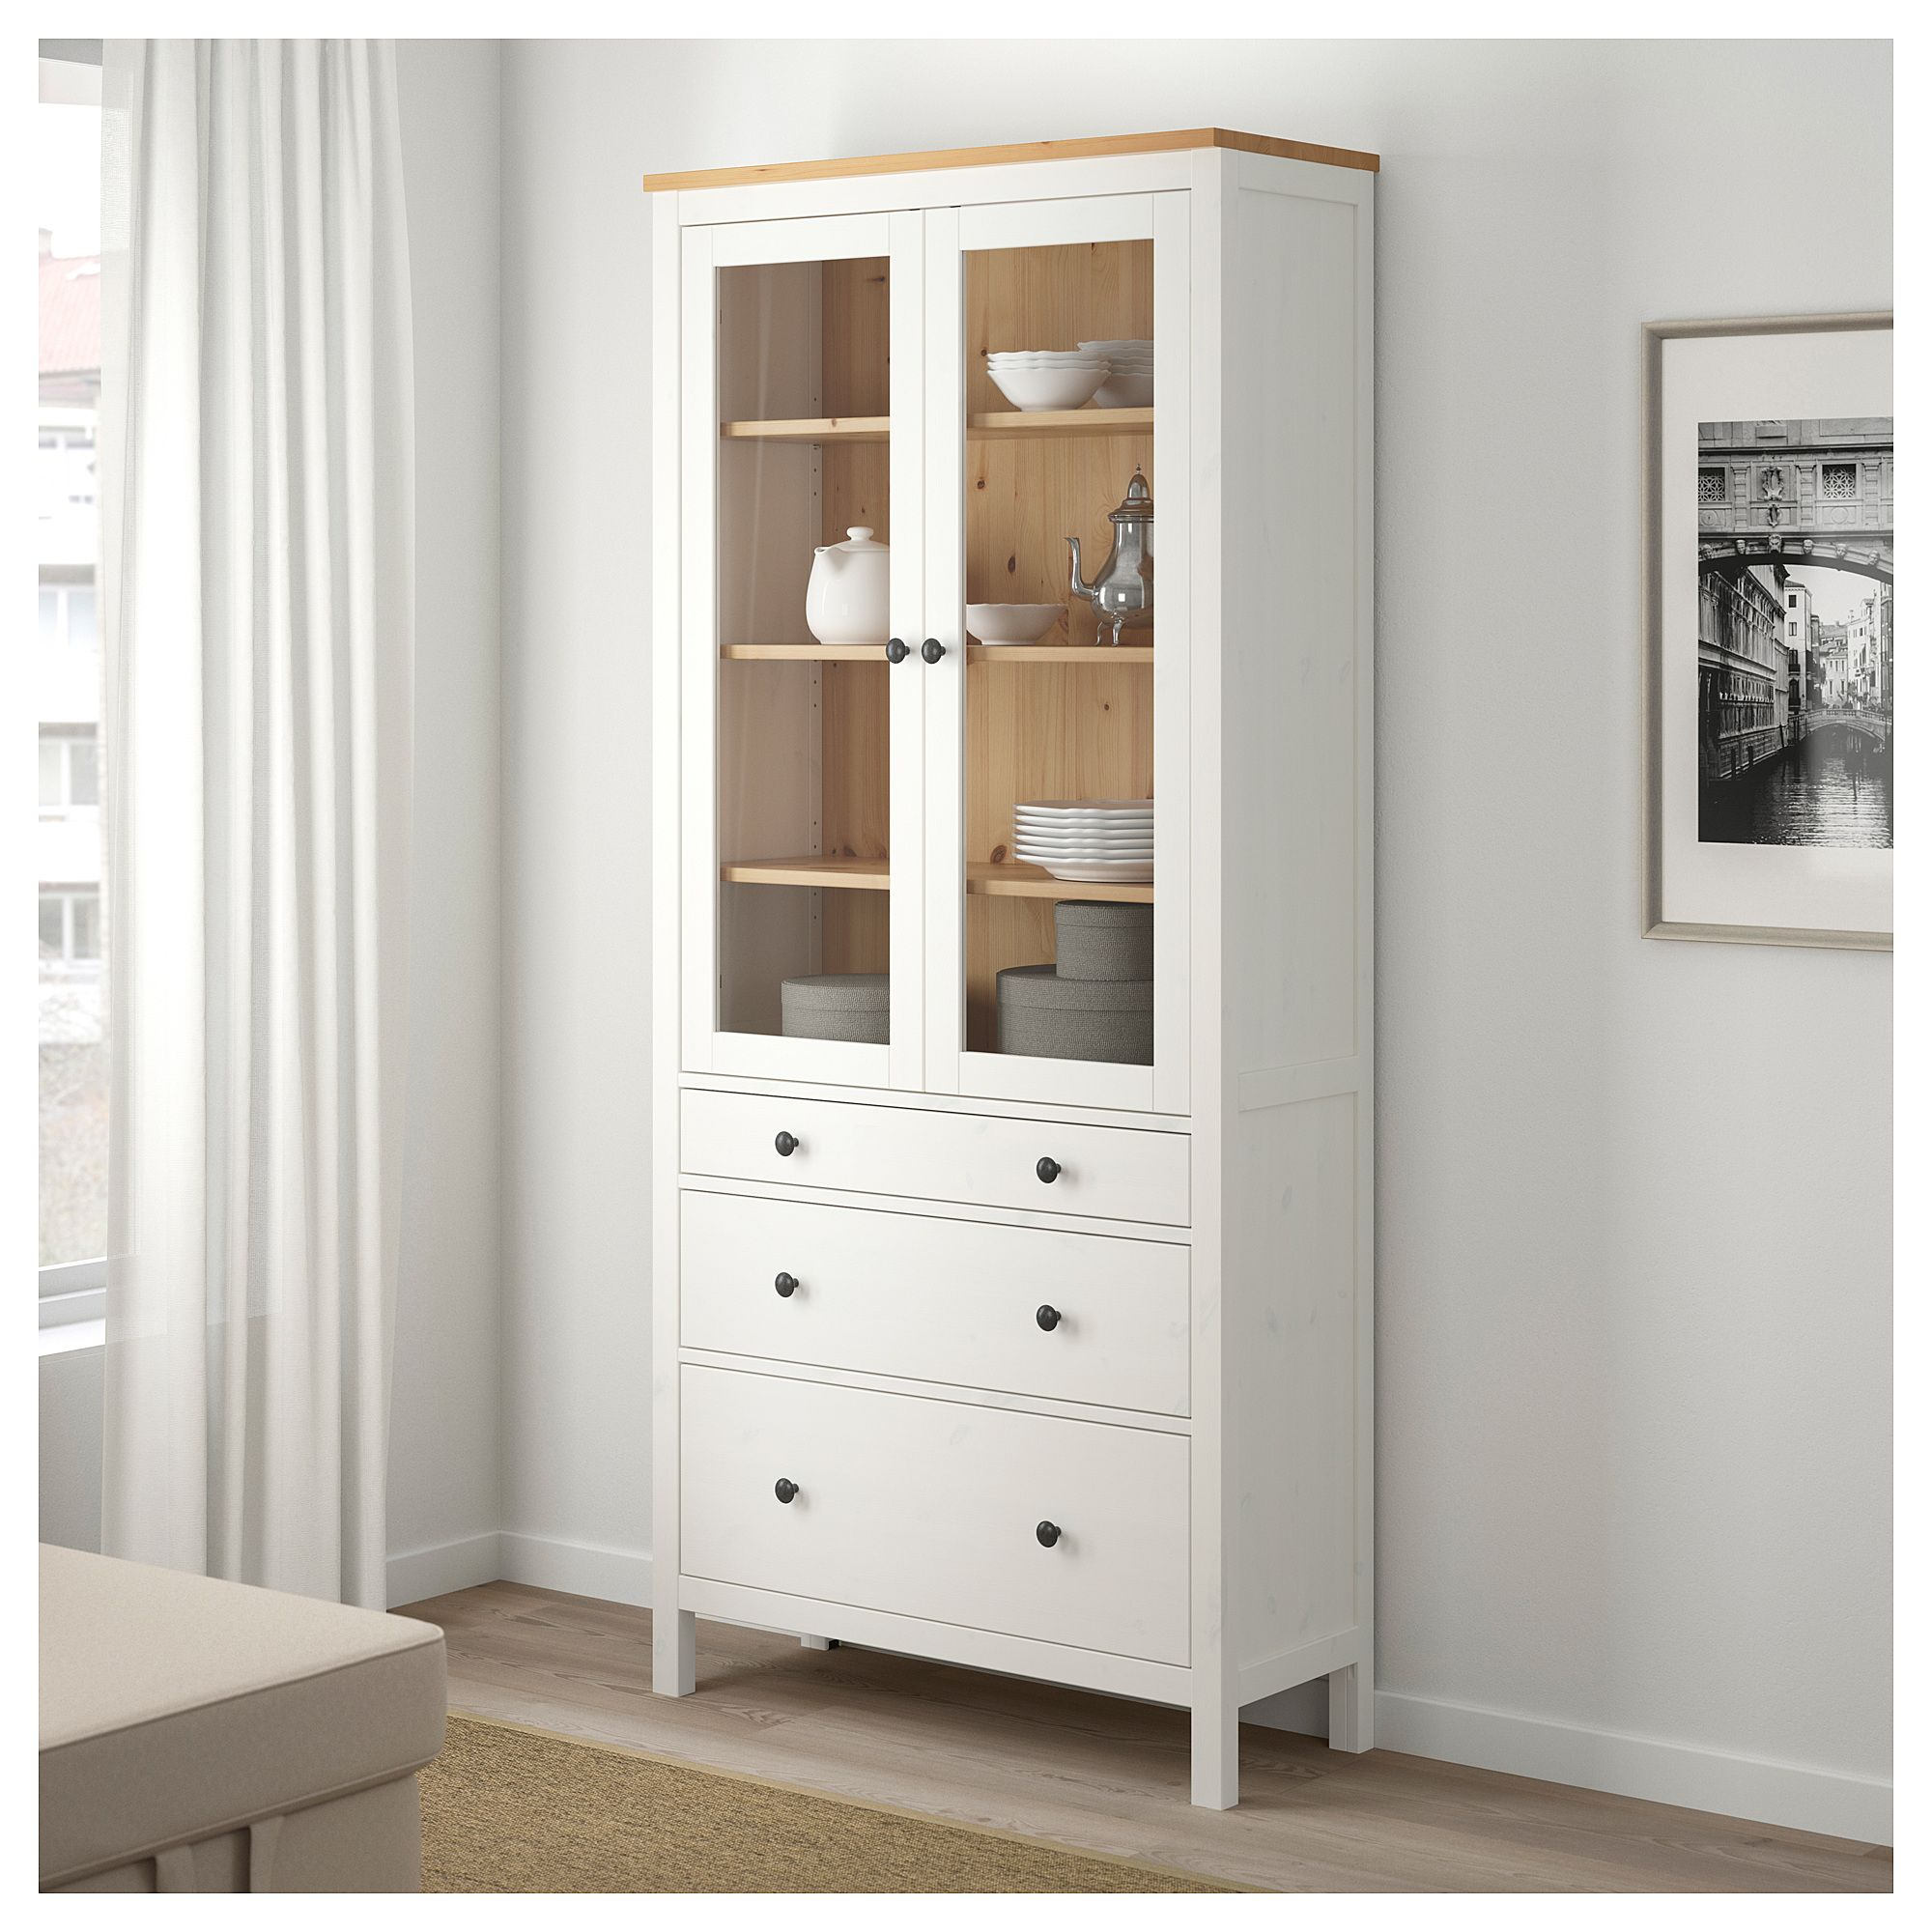 Hemnes Glass Door Cabinet With 3 Drawers White Stain Light